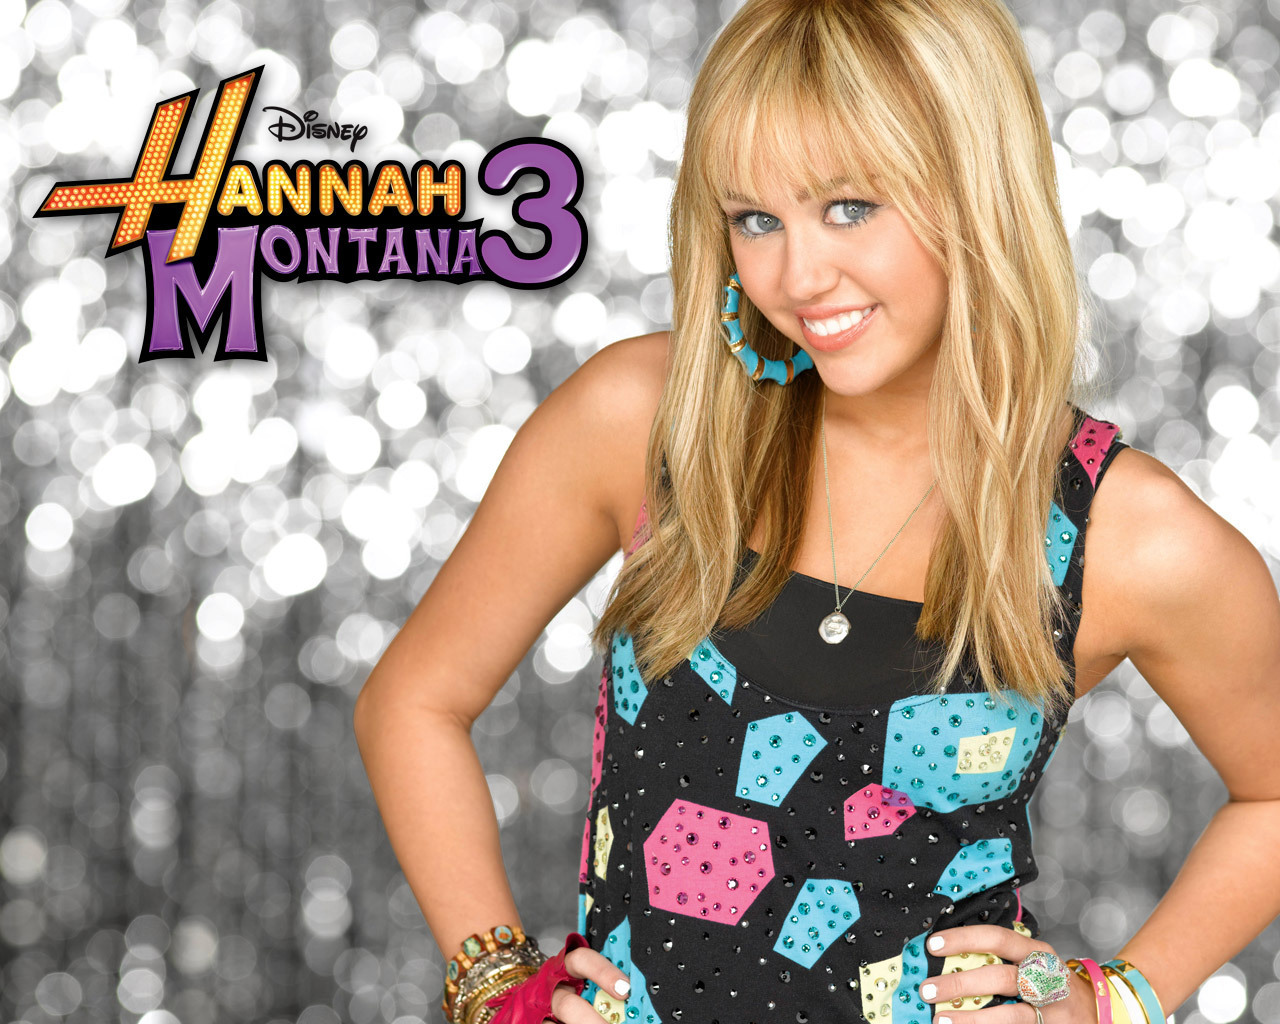 -Hannah-Montana-best-of-both-girls-28306